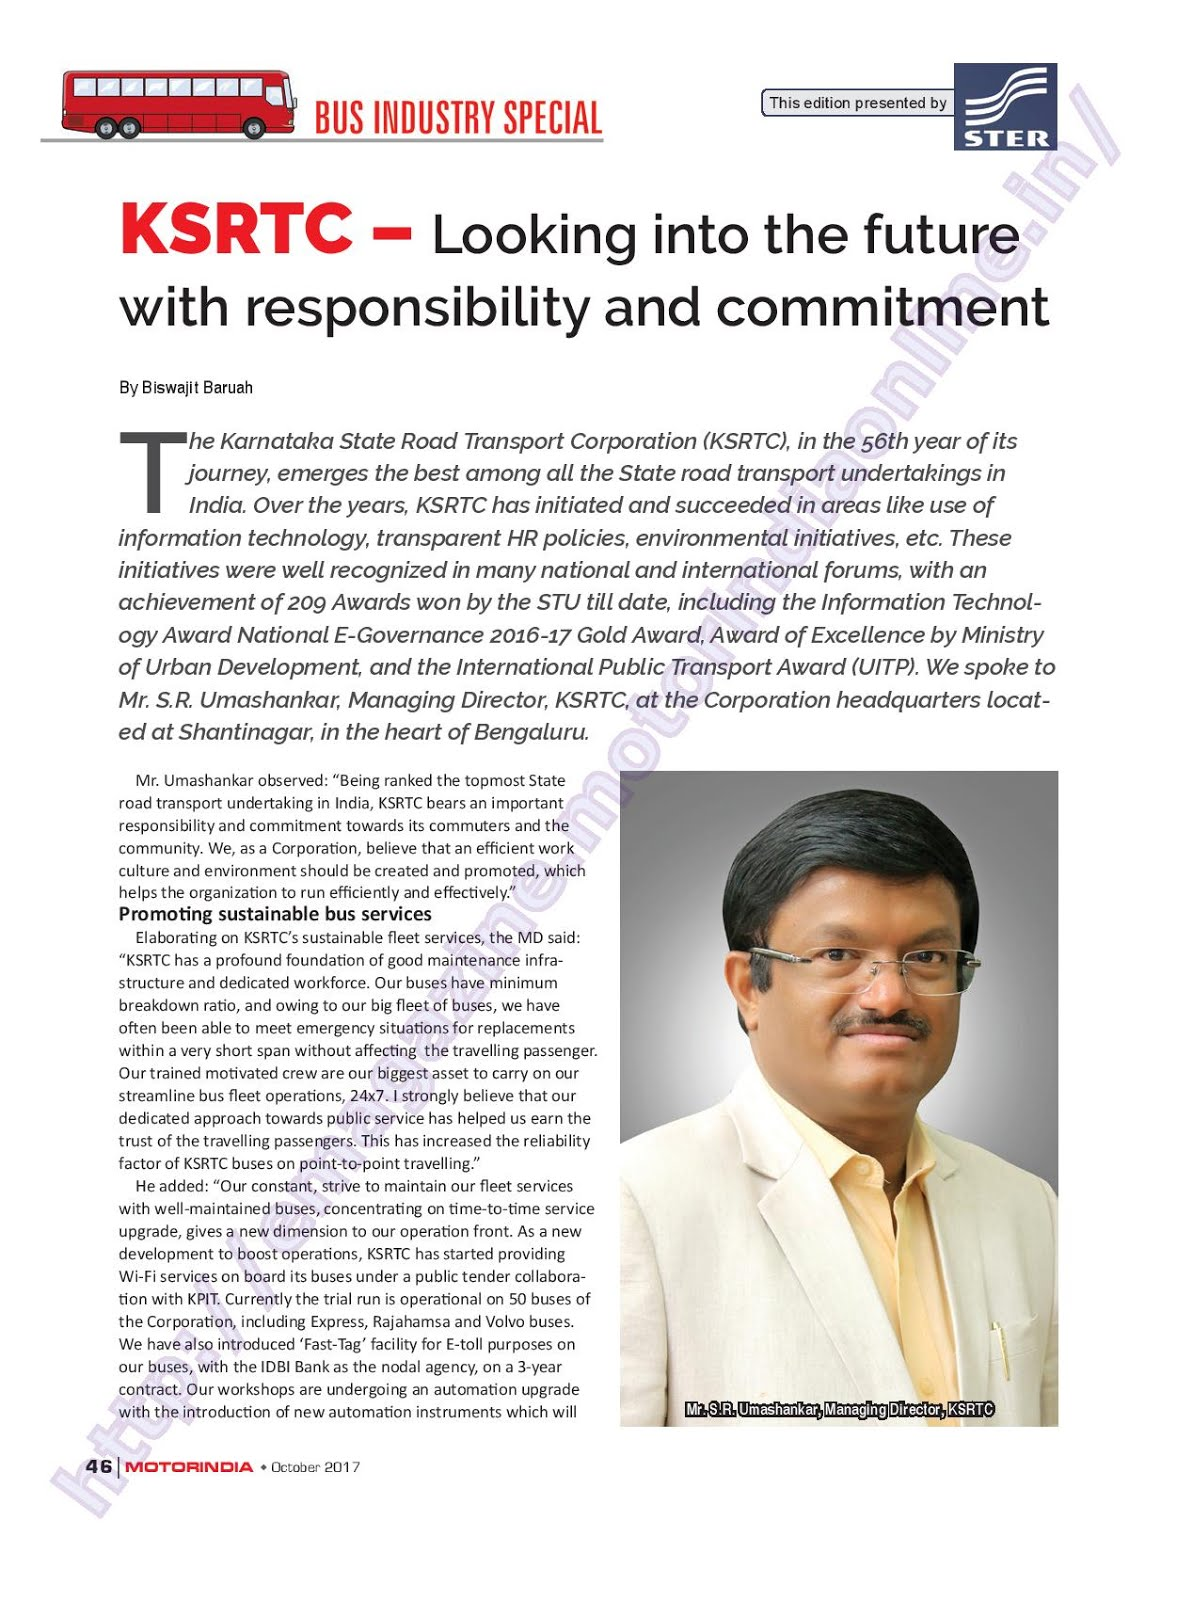 MOTOR INDIA ARTICLE 22 : KSRTC KARNATAKA